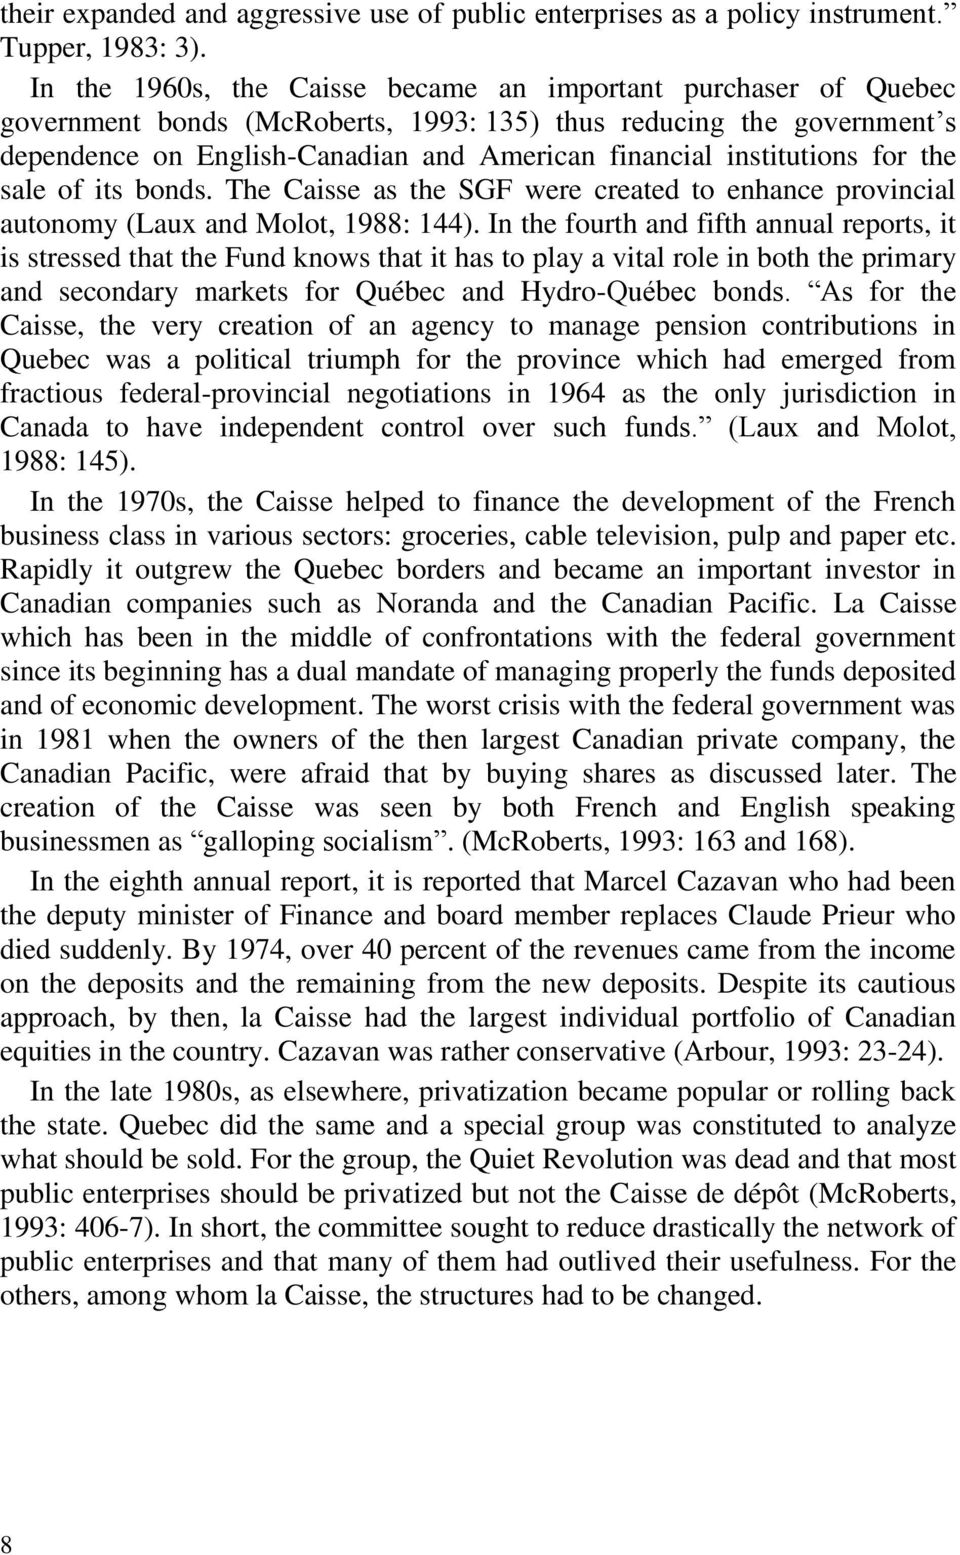 institutions for the sale of its bonds. The Caisse as the SGF were created to enhance provincial autonomy (Laux and Molot, 1988: 144).